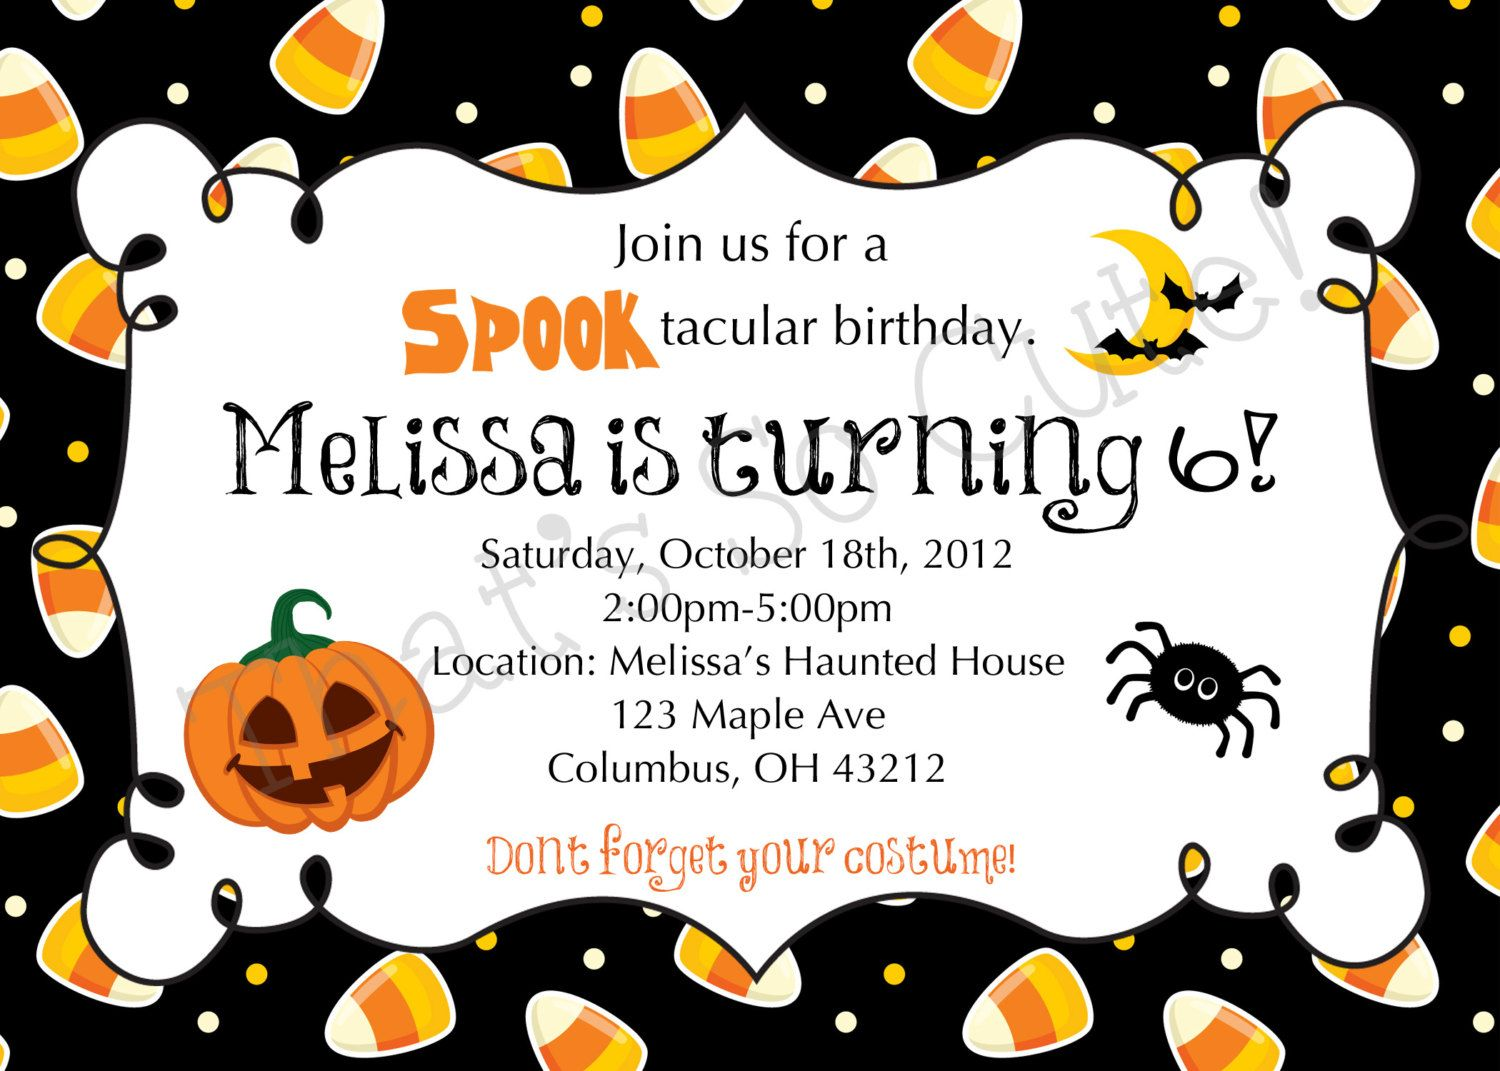 003 Imposing Free Halloween Party Invitation Template Inspiration  Templates Download Printable BirthdayFull